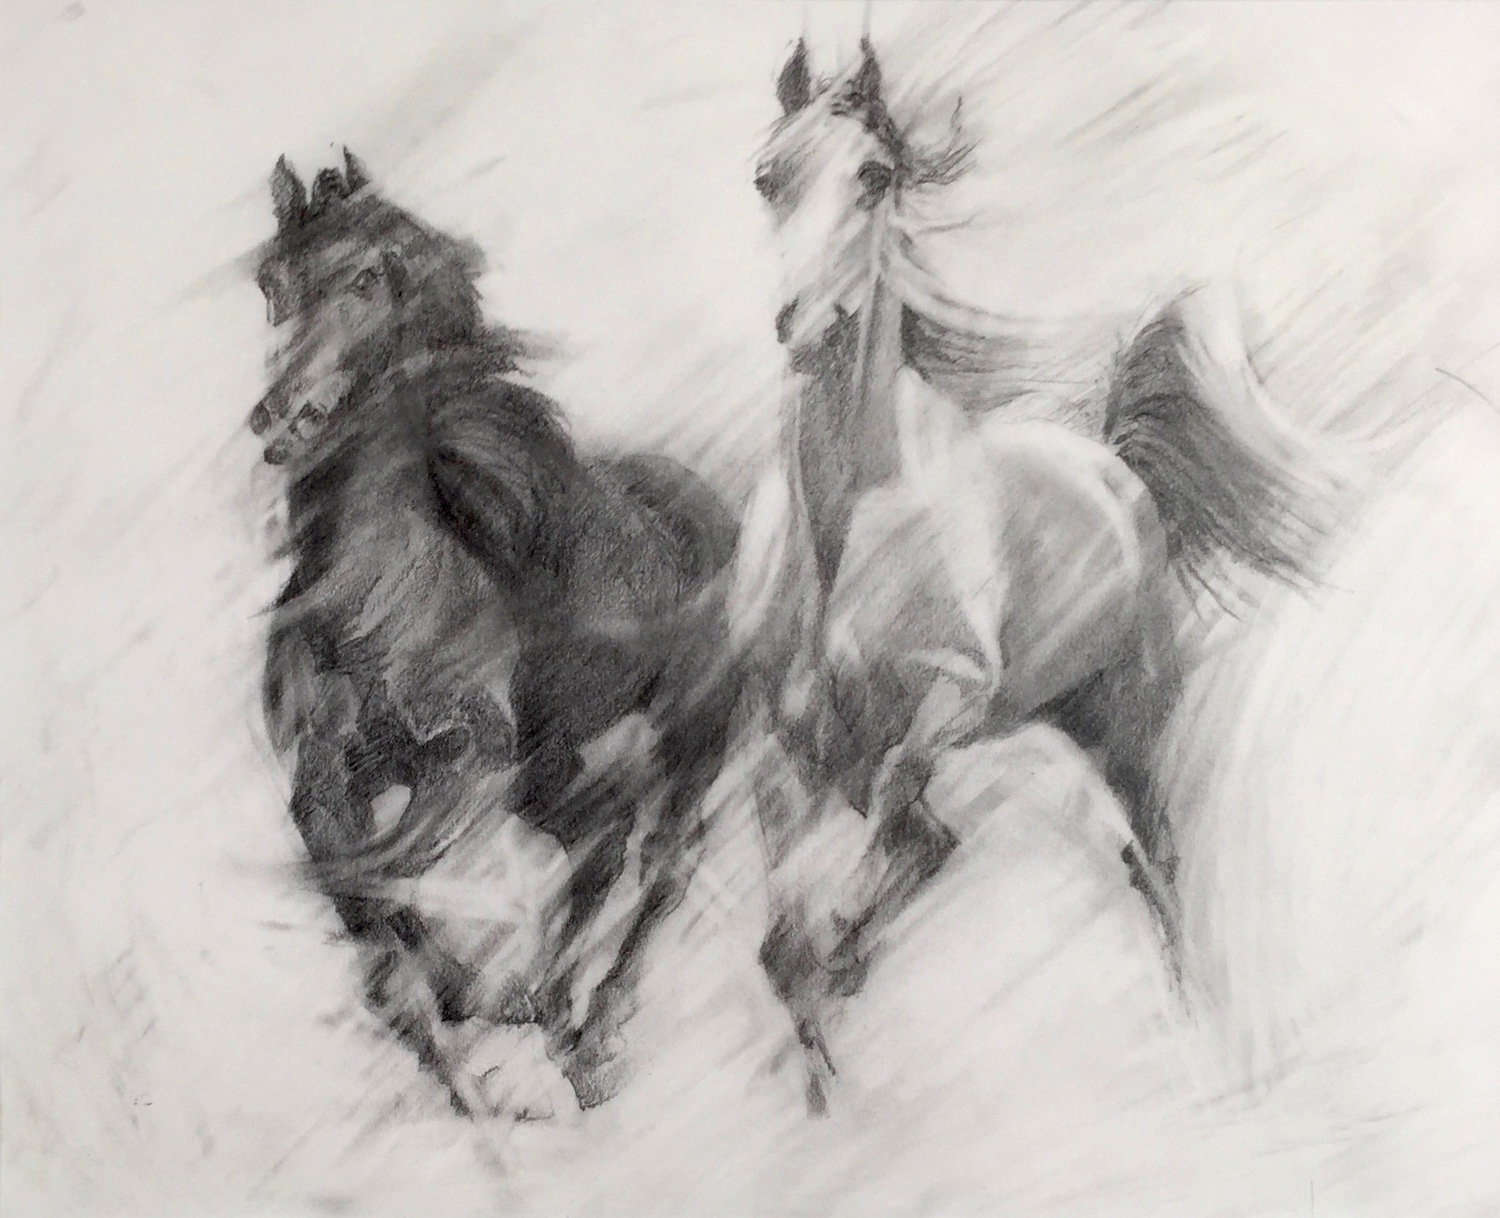 THESE TWO YOUNG HORSES GALLOP, CAREFREE, TOGETHER